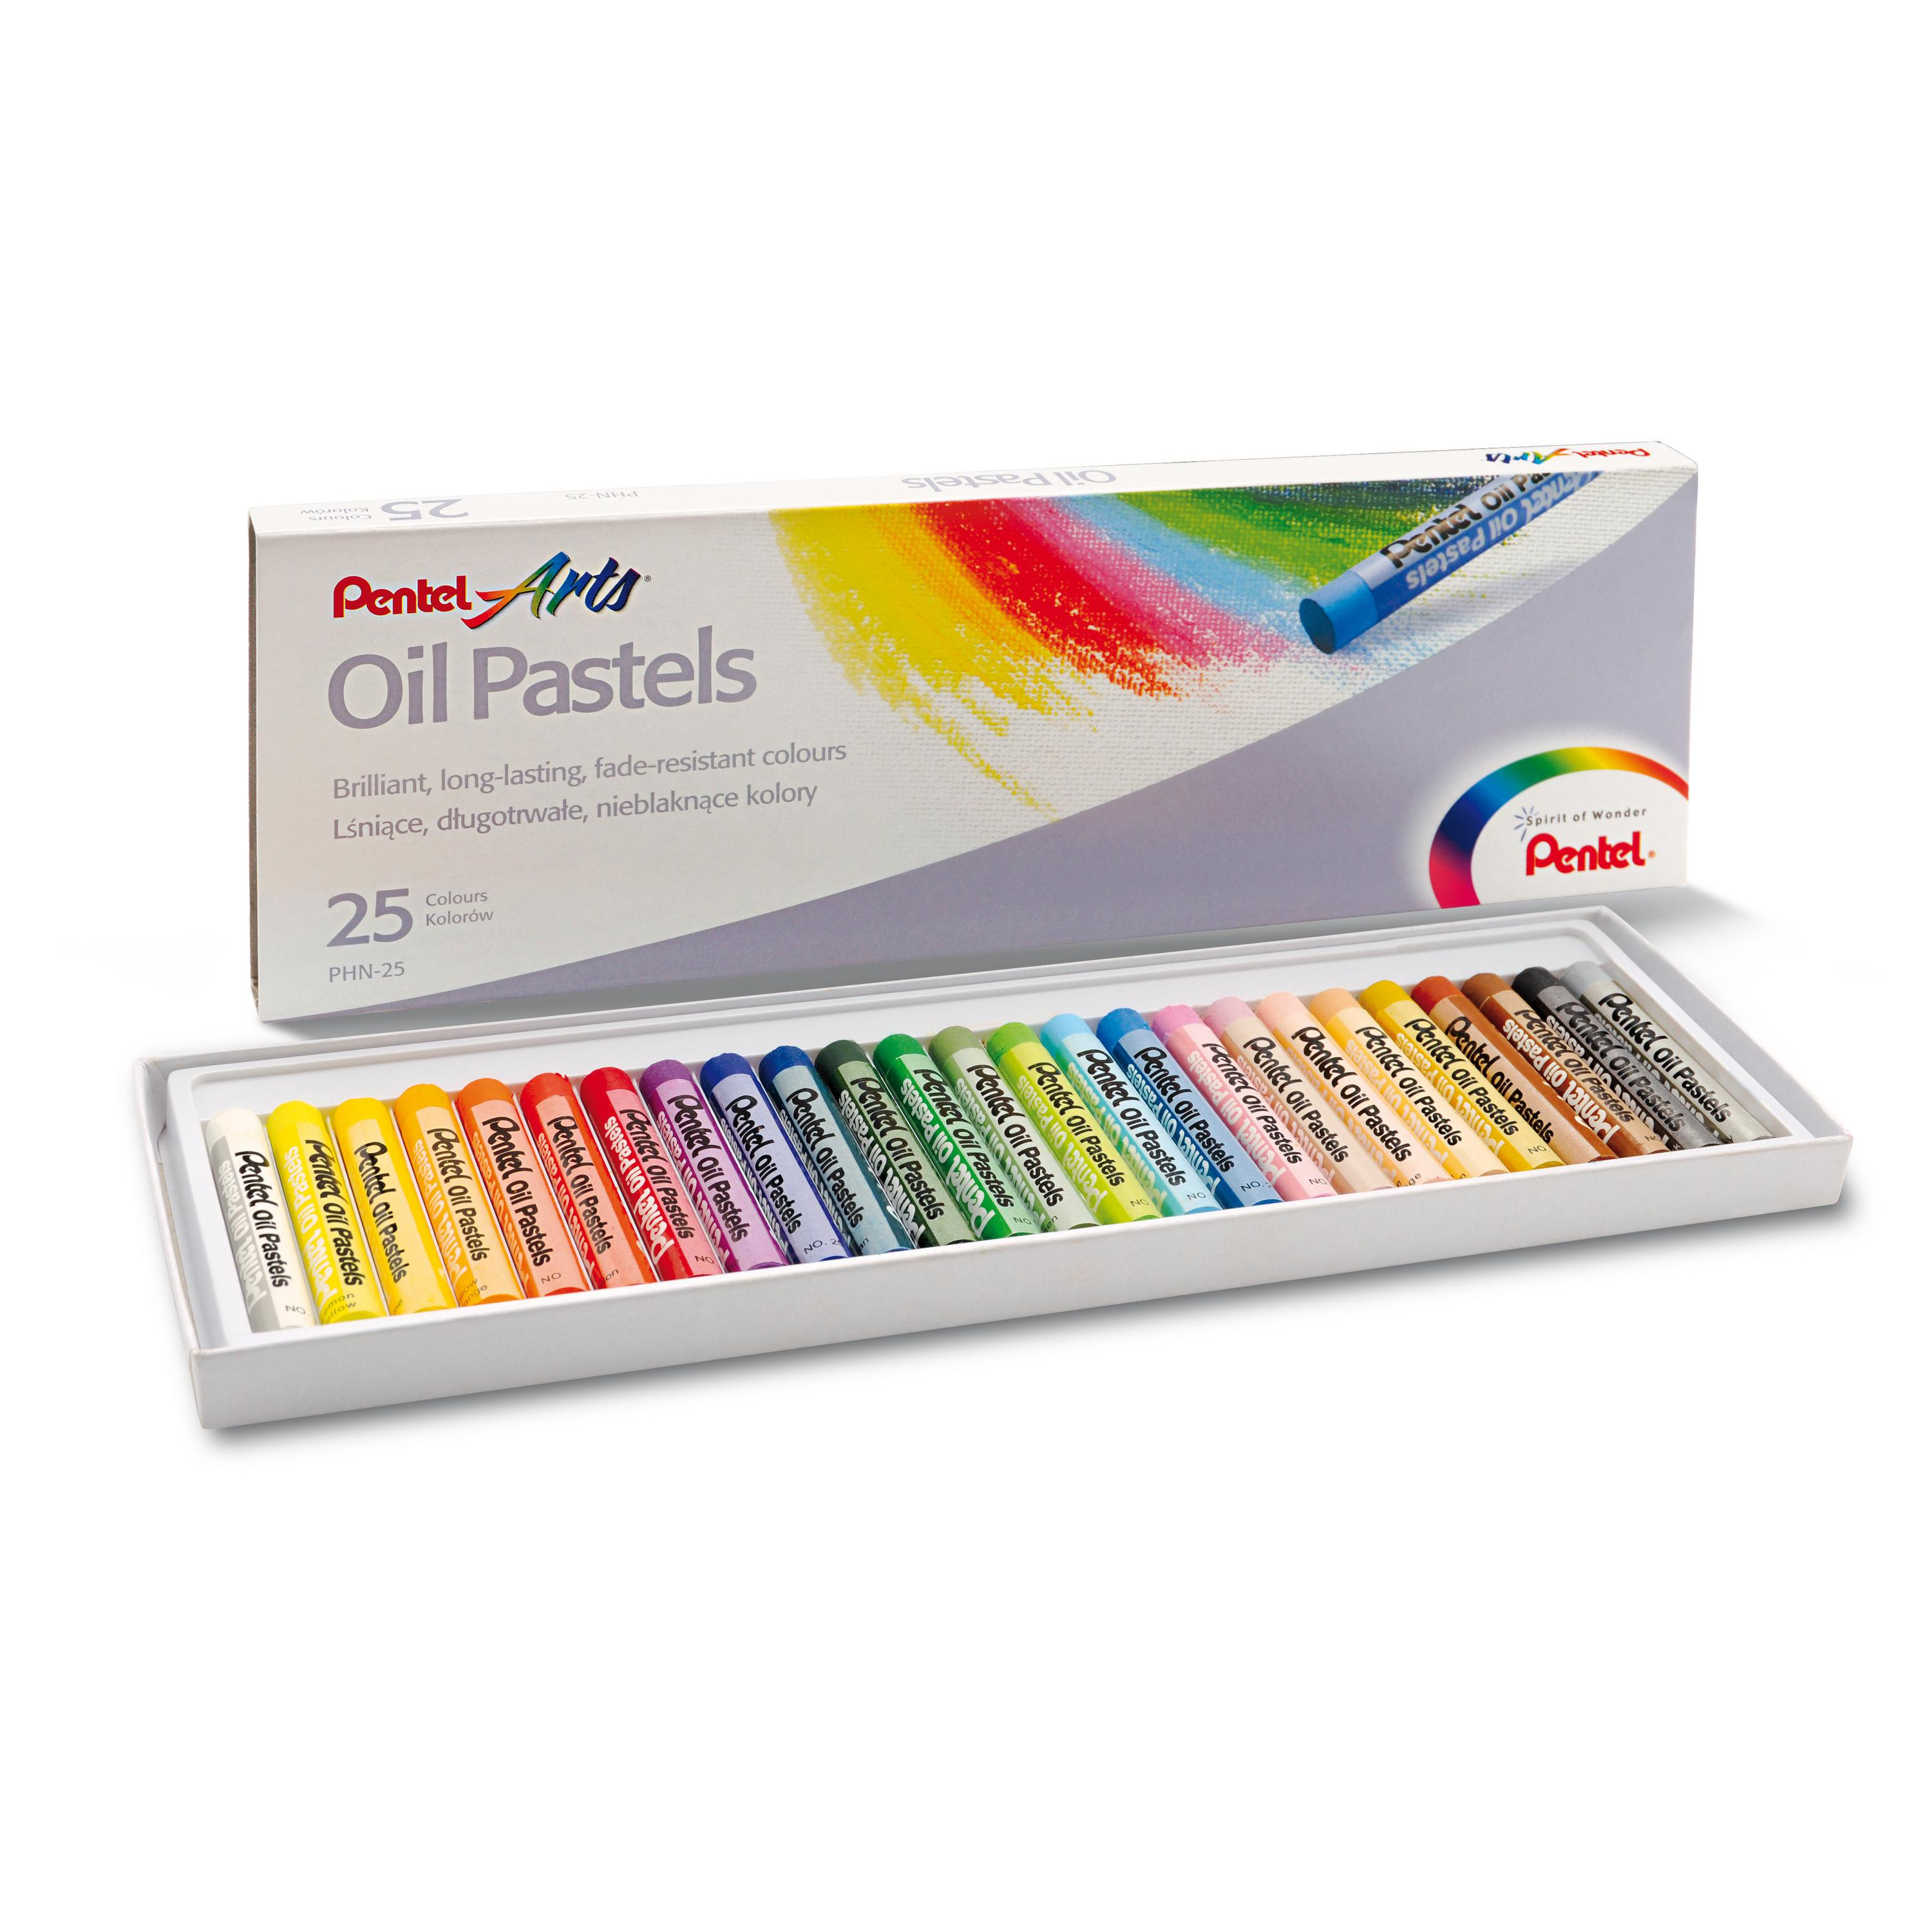 Pentel Oil Pastels 25 Colours PHN-25